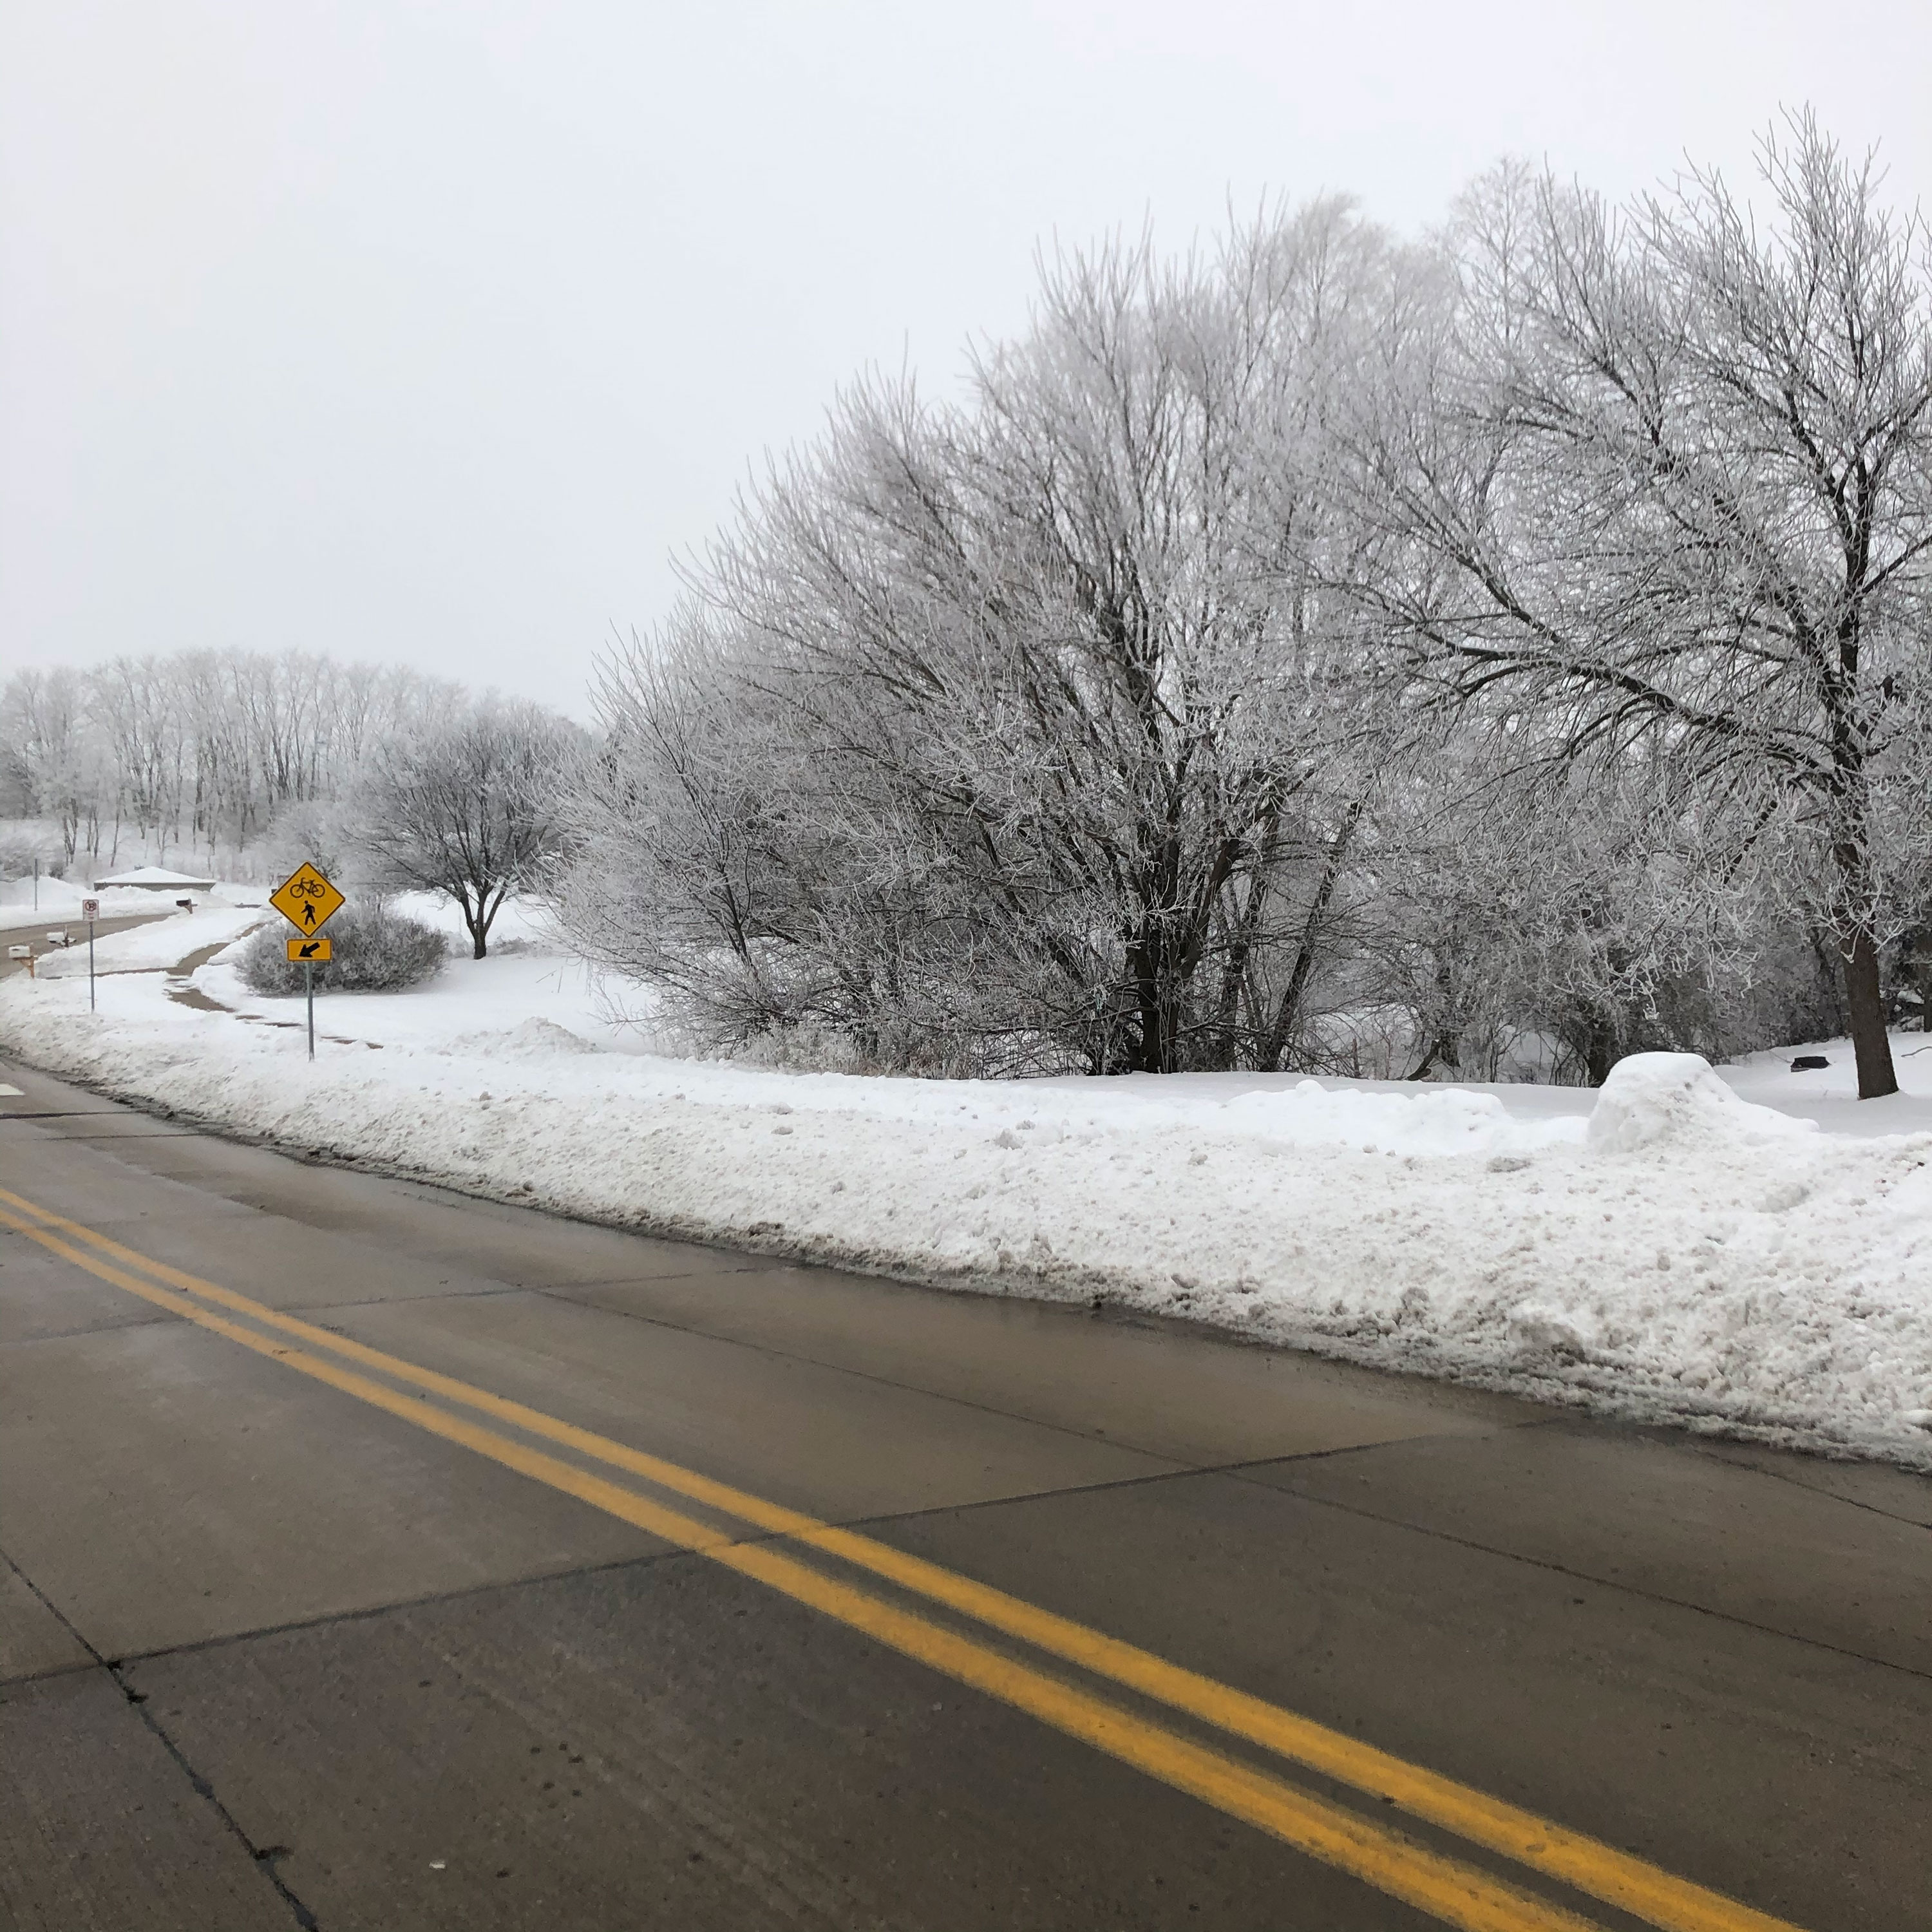 Road flanked by a snowy landscape and white sky above.